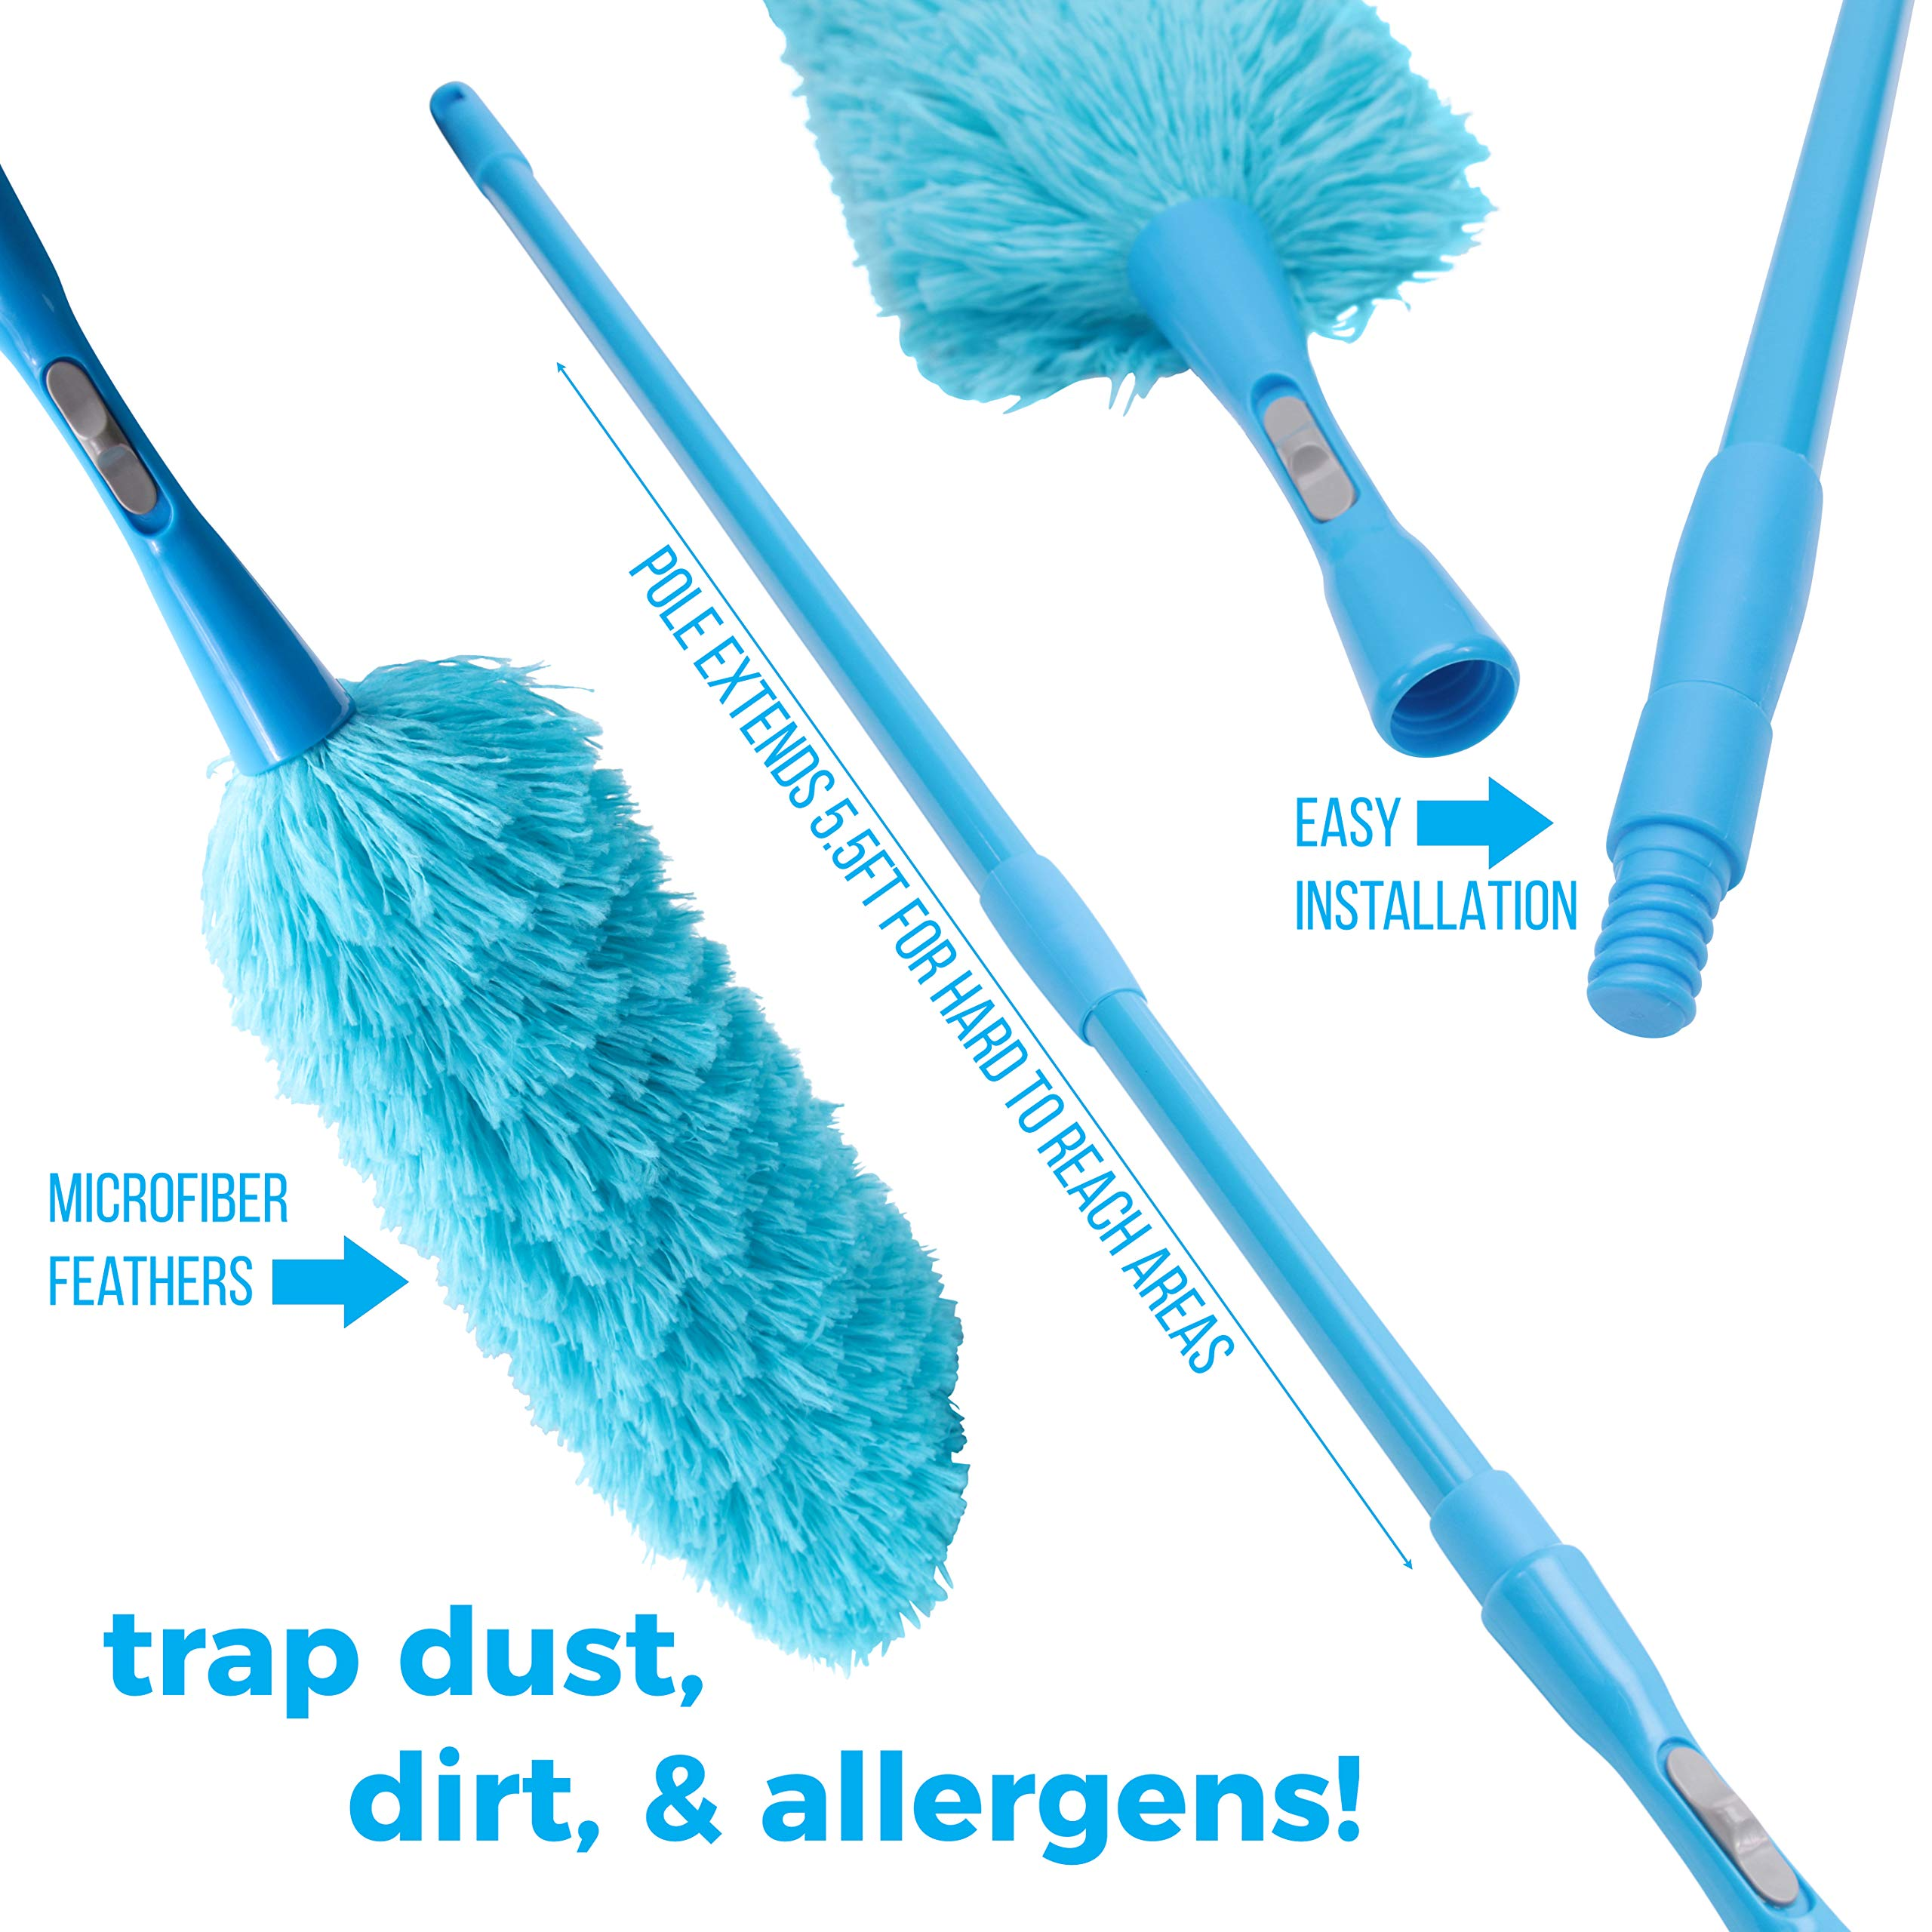 Hank HouseHold TriboDuster with Bonus Blinds Cleaner - Microfiber Duster for Cleaning with Extendable Telescoping Pole Up to 5ft6''! Ceiling Fan Dusters, Cobweb/Spider Web Brush and Blind Duster by Hank HouseHold (Image #8)